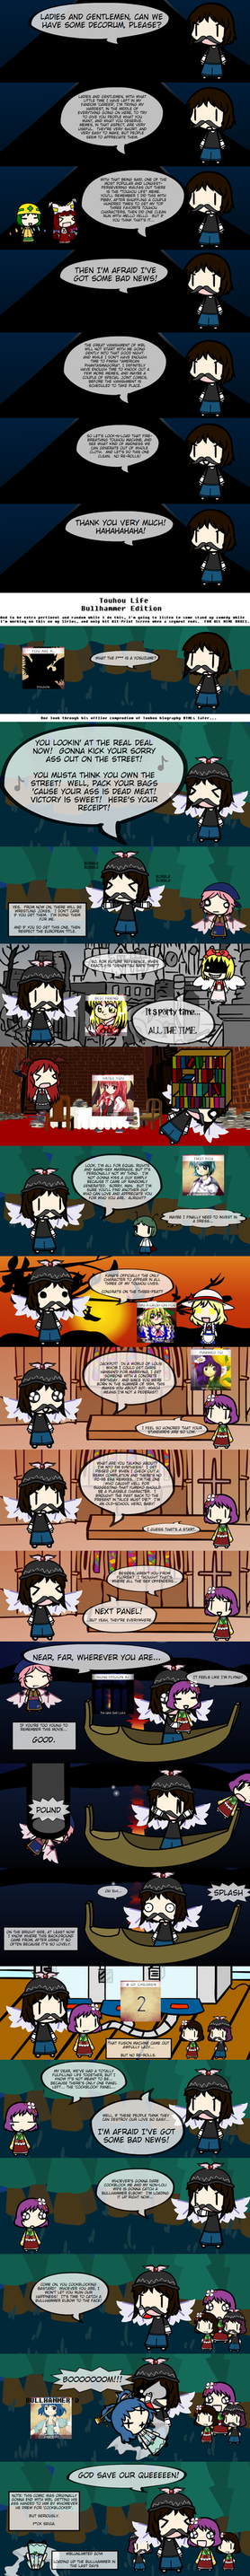 Touhou Life: Bullhammer Edition! by WBLRevival